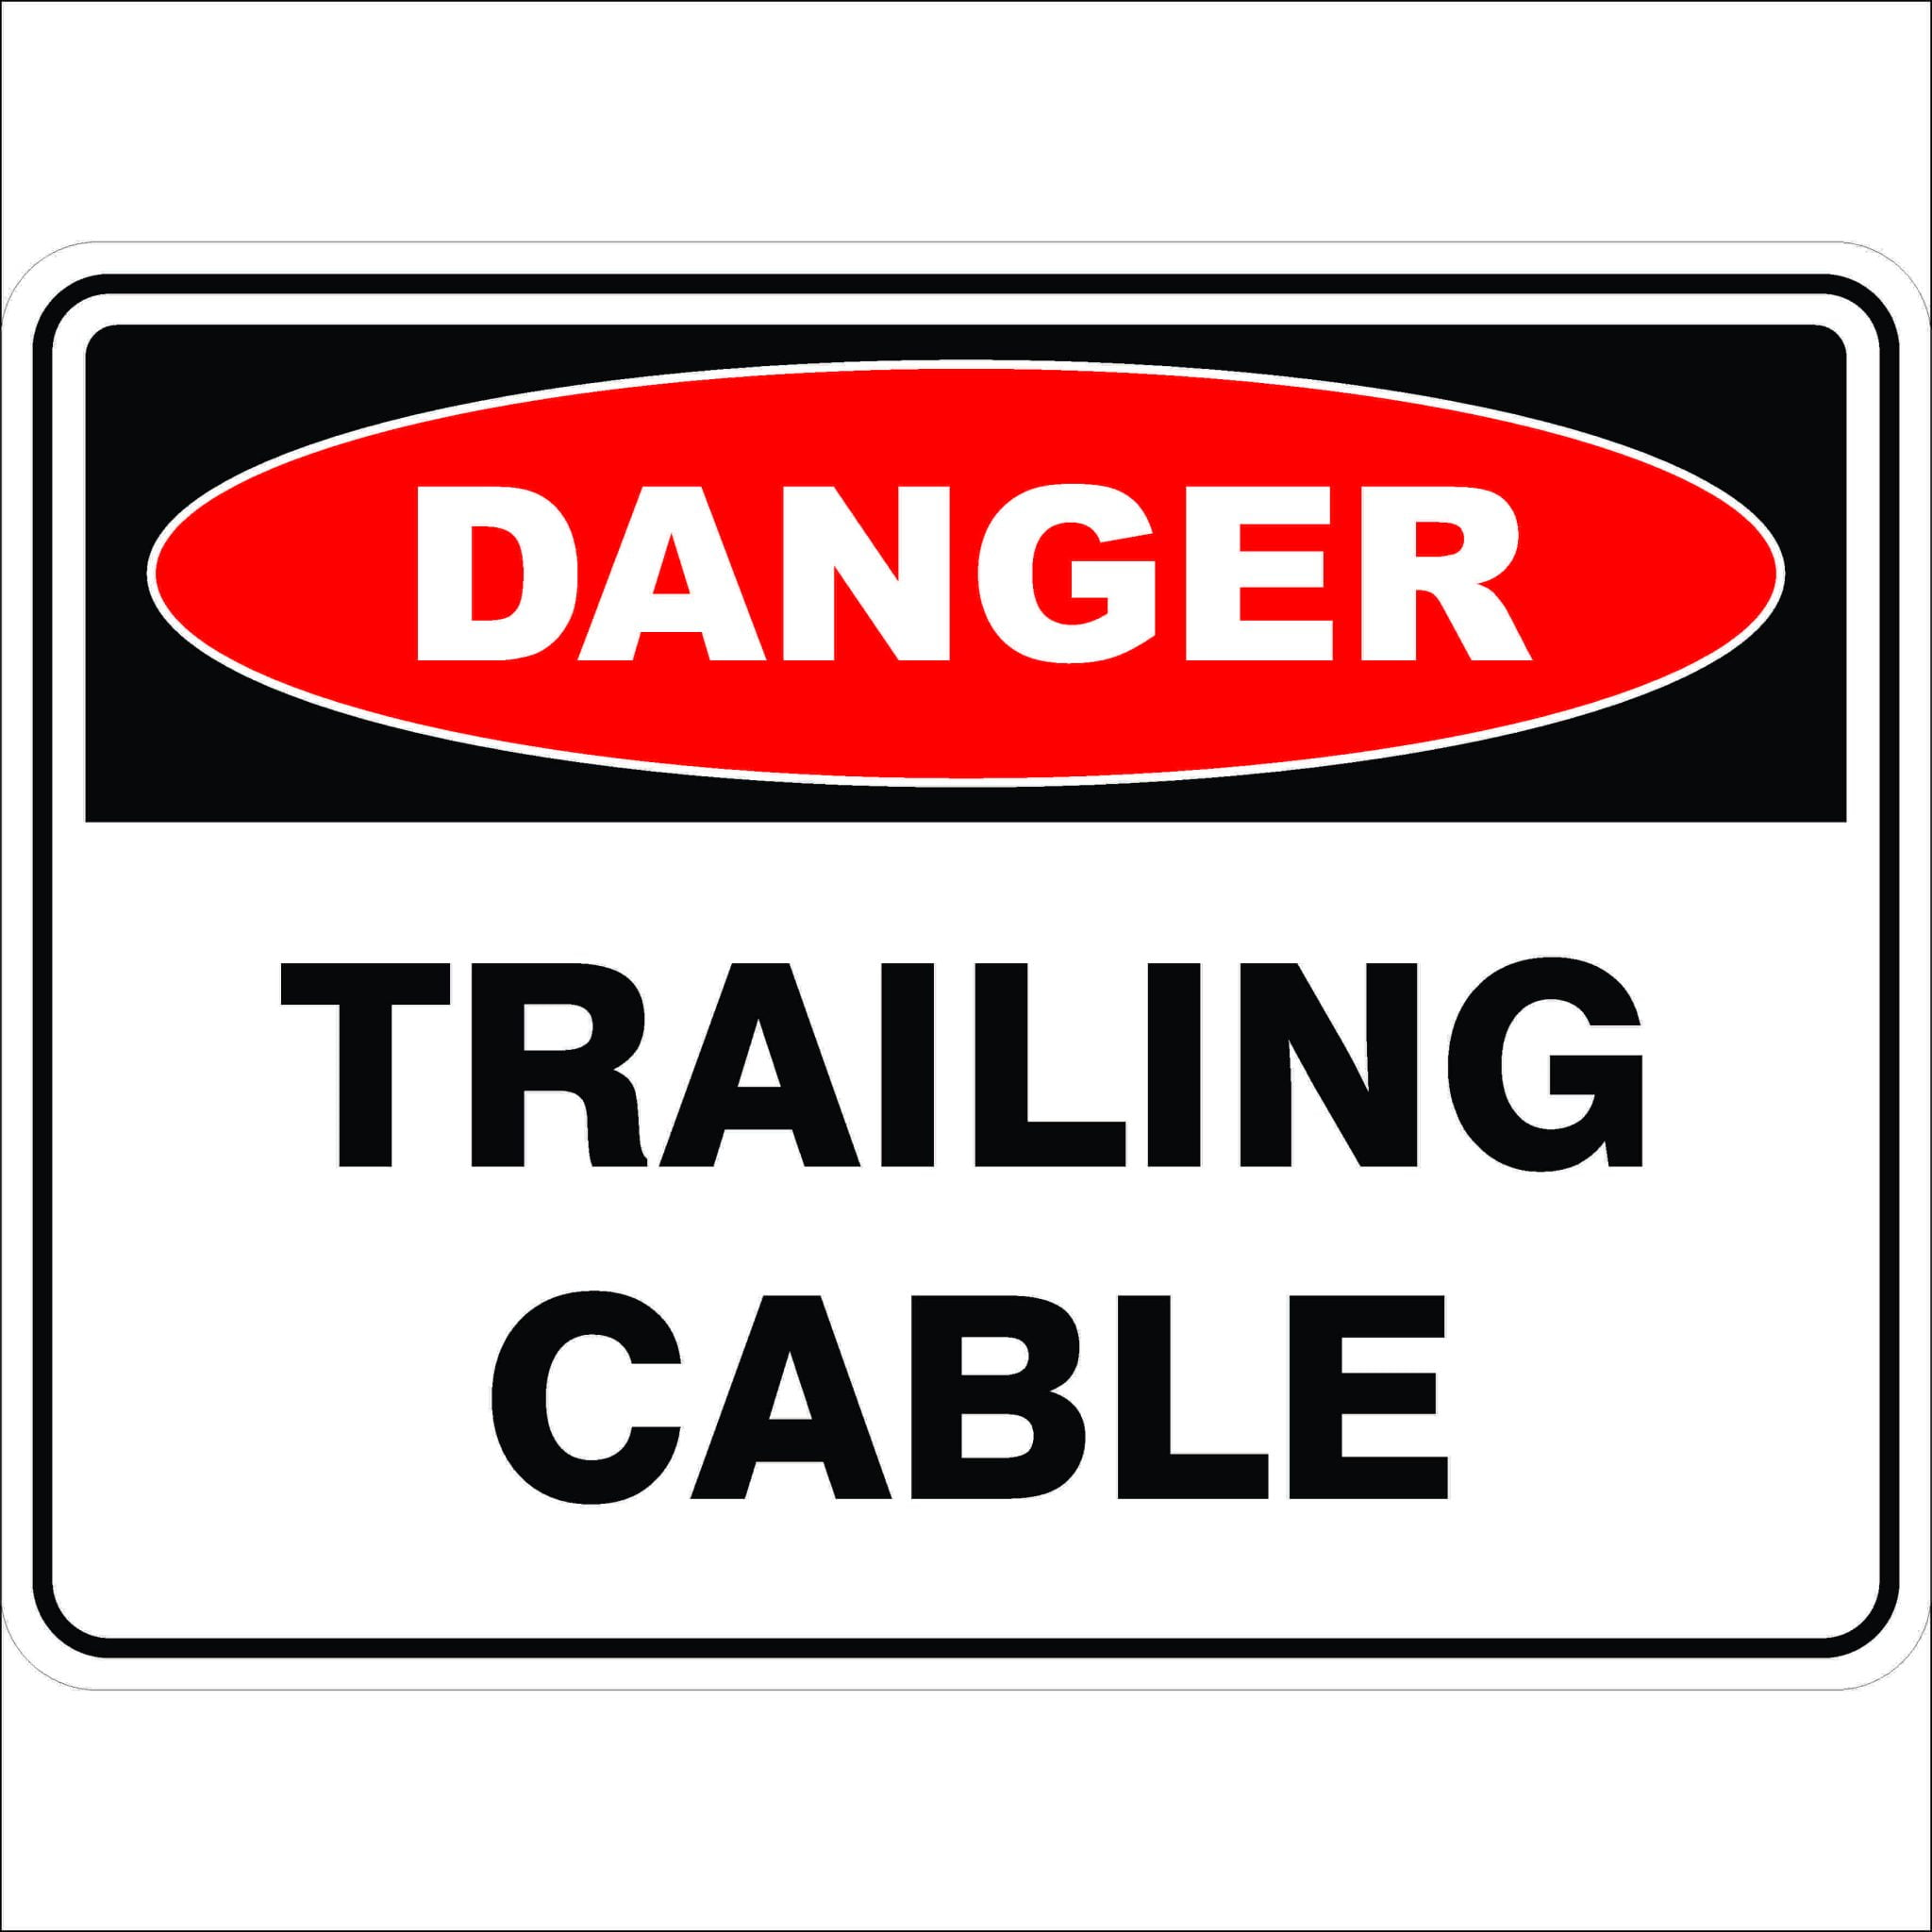 Danger Signs TRAILING CABLE